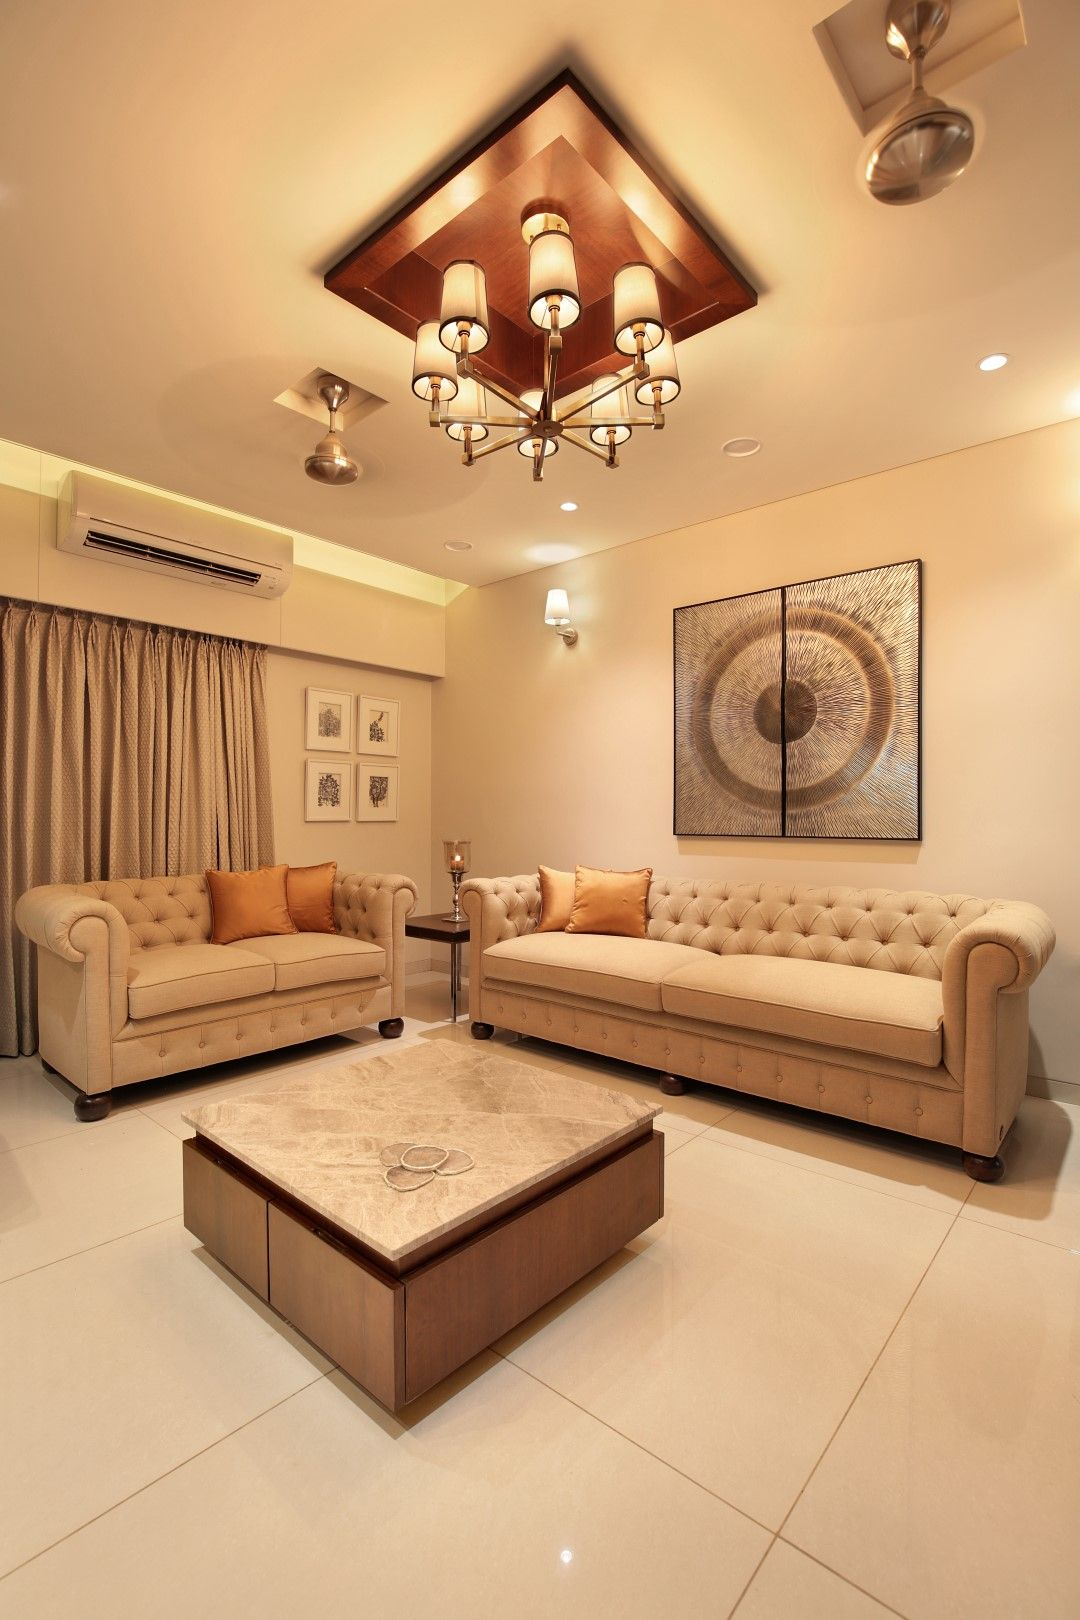 3 Bhk Flat Interiors The Oak Woods Vadodara Studio7 The Architects Diary Indian Living Rooms Living Room Sofa Design Flat Interior